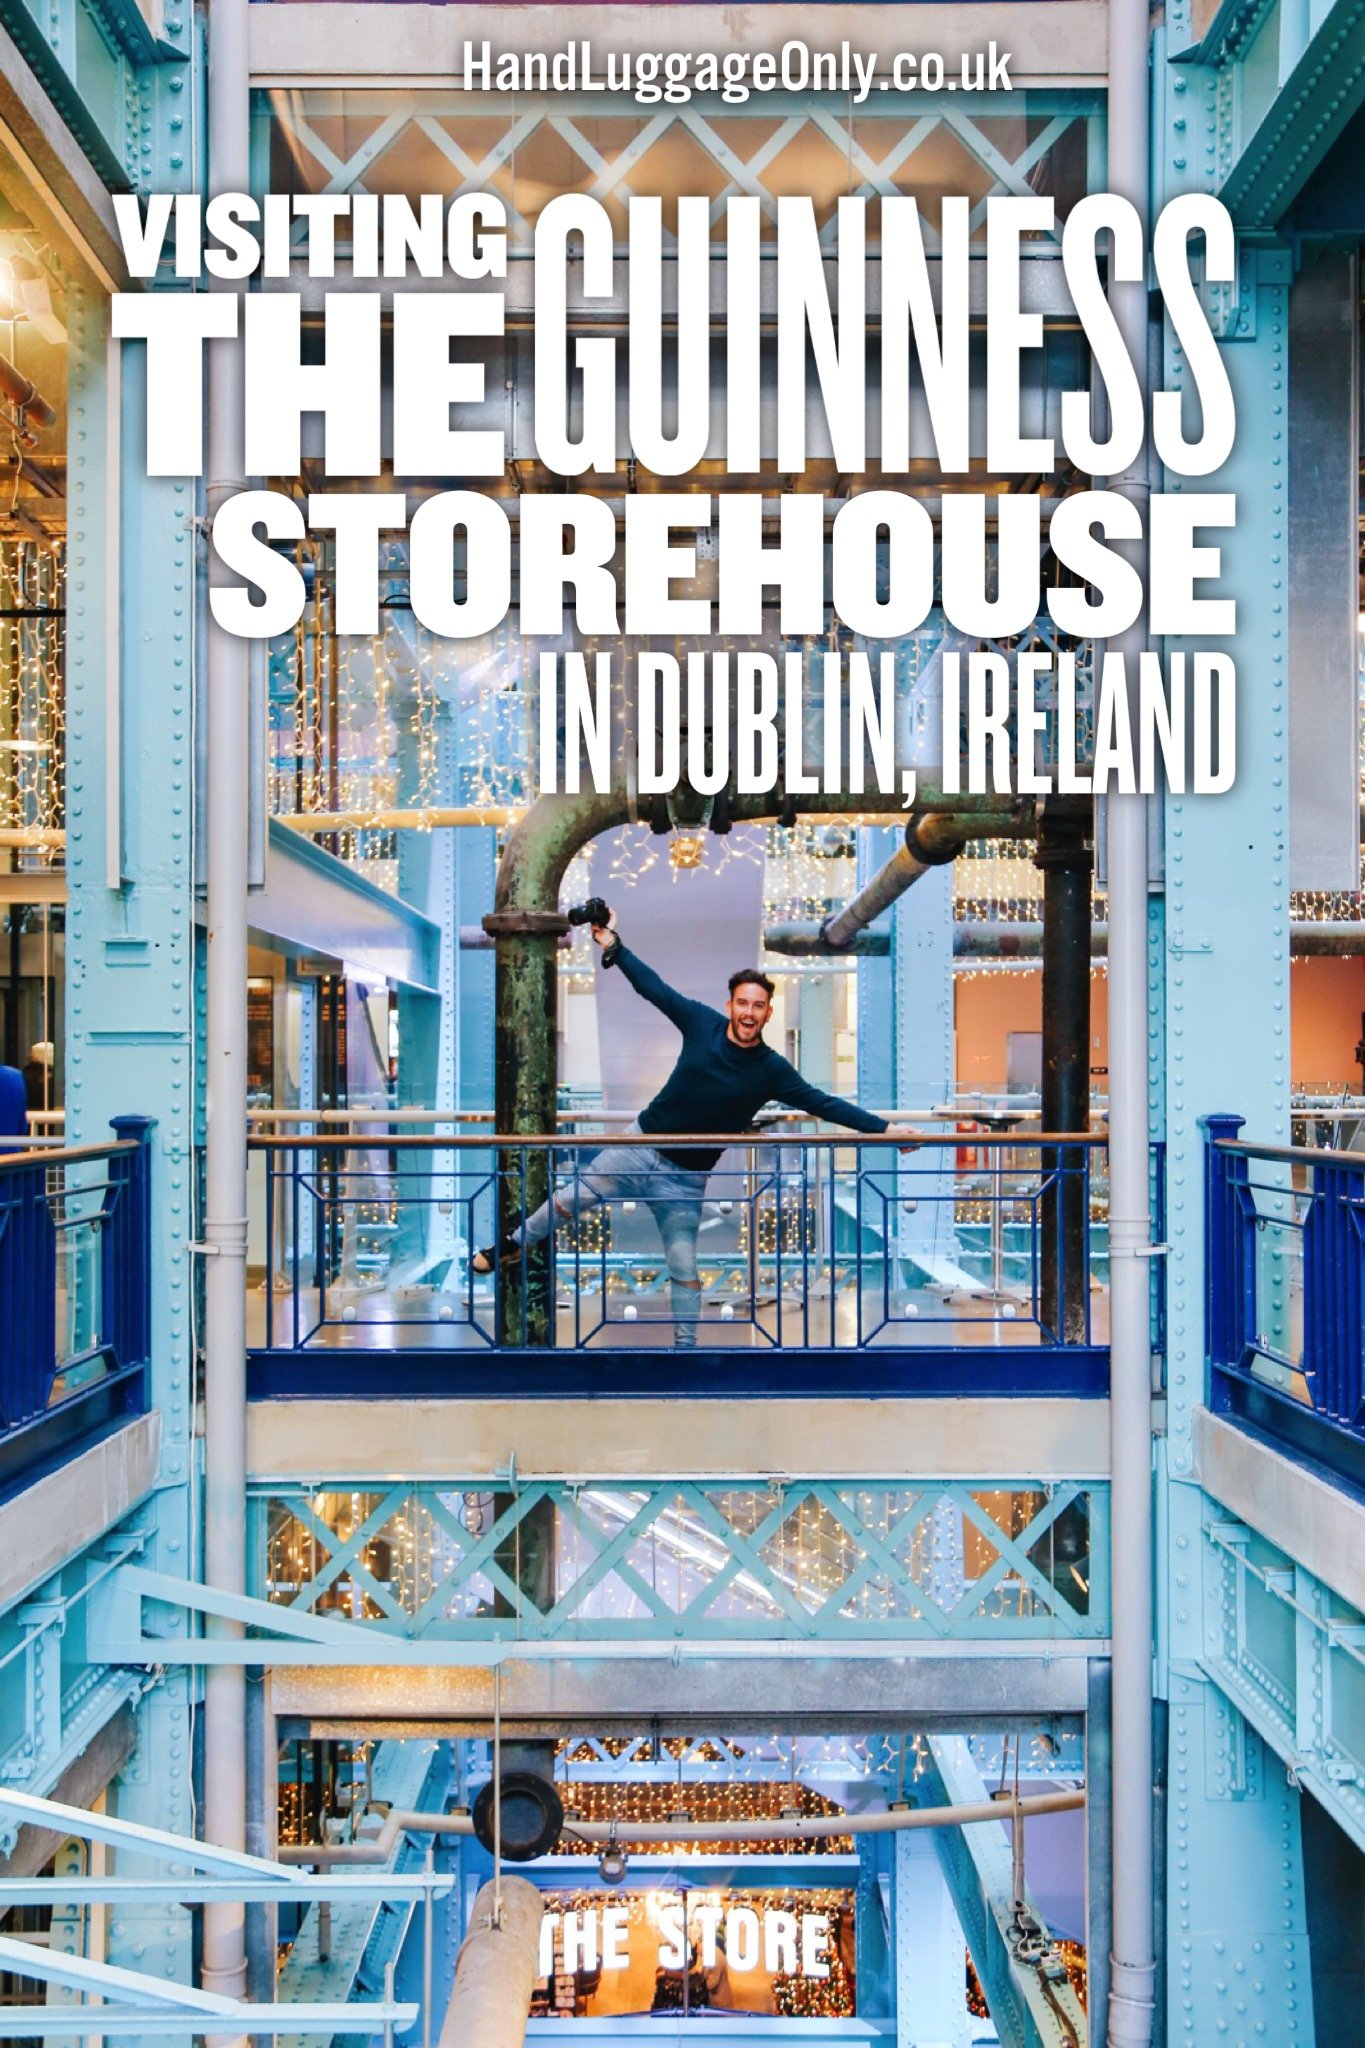 A Day At The Guinness Storehouse In Dublin, Ireland - Part 1